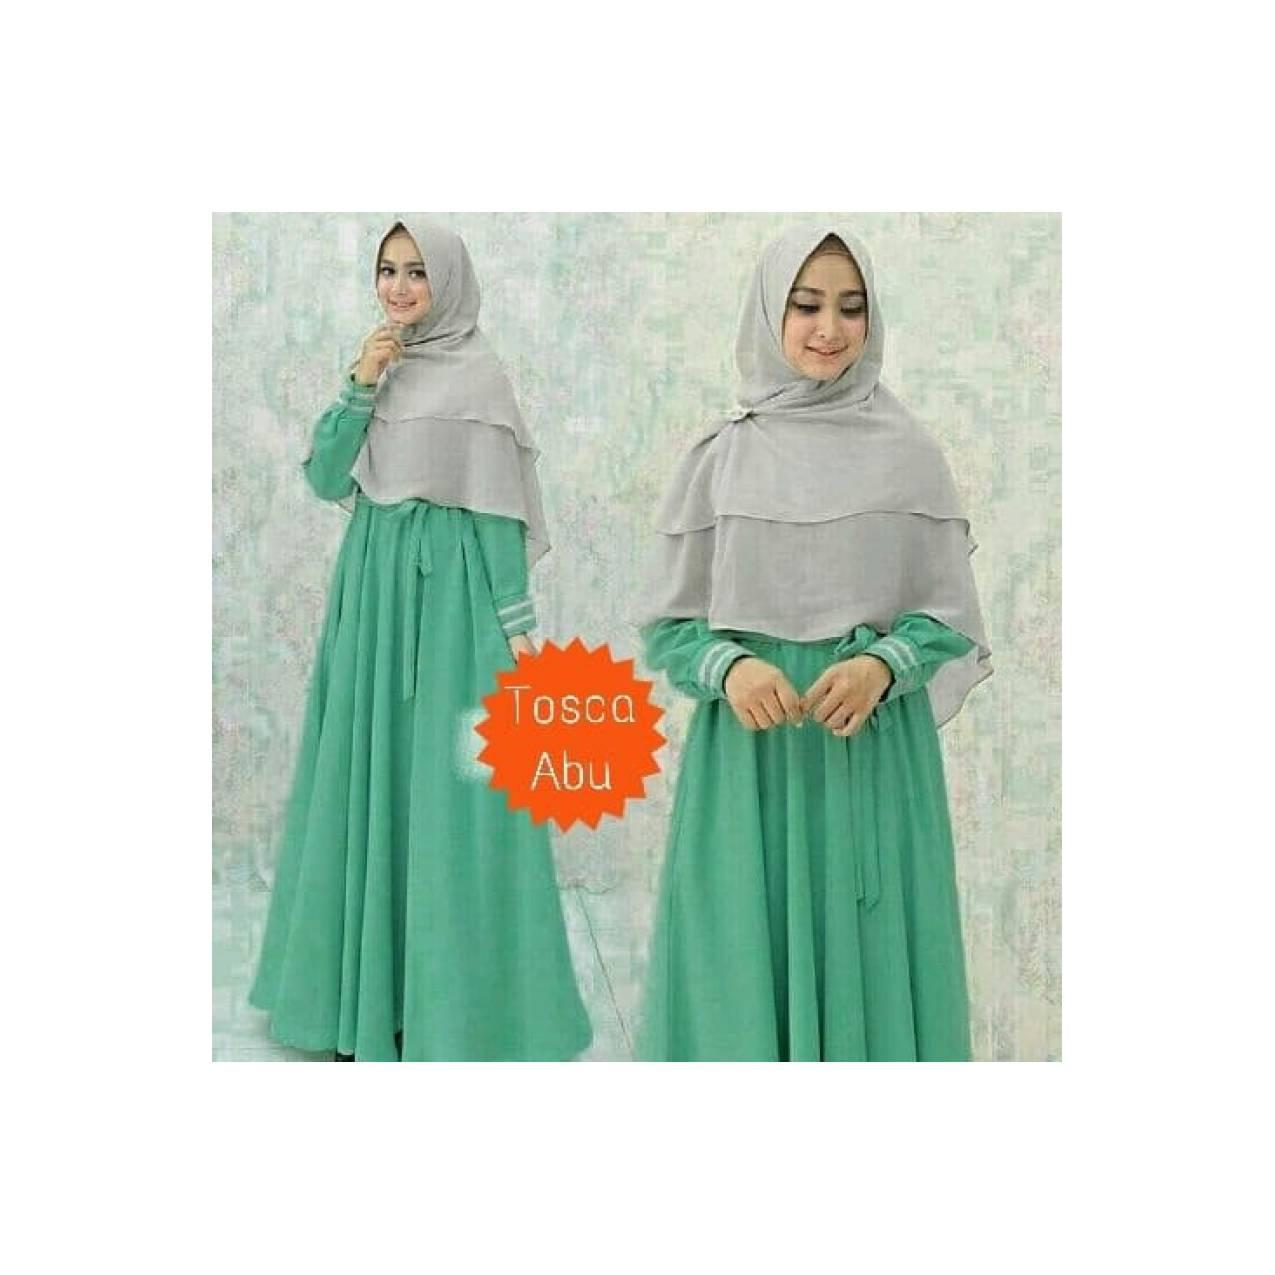 baju muslim pesta gamis yunmina aneka warna 2 dress maxi hijab trendy